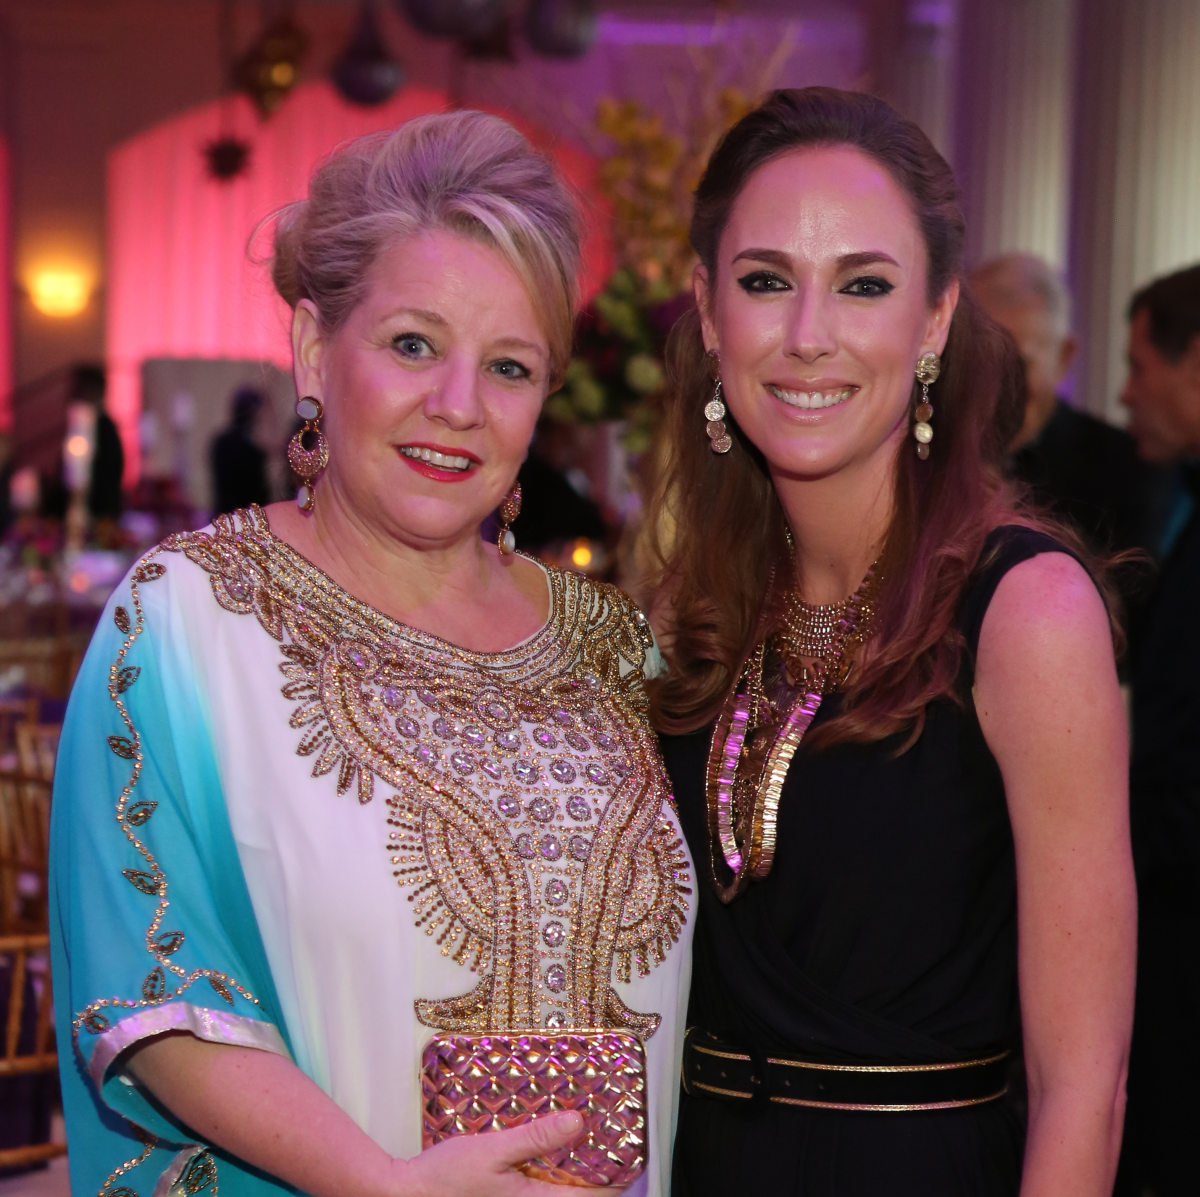 SPA gala, April 2016, Elizabeth Vail, Rolin Golden